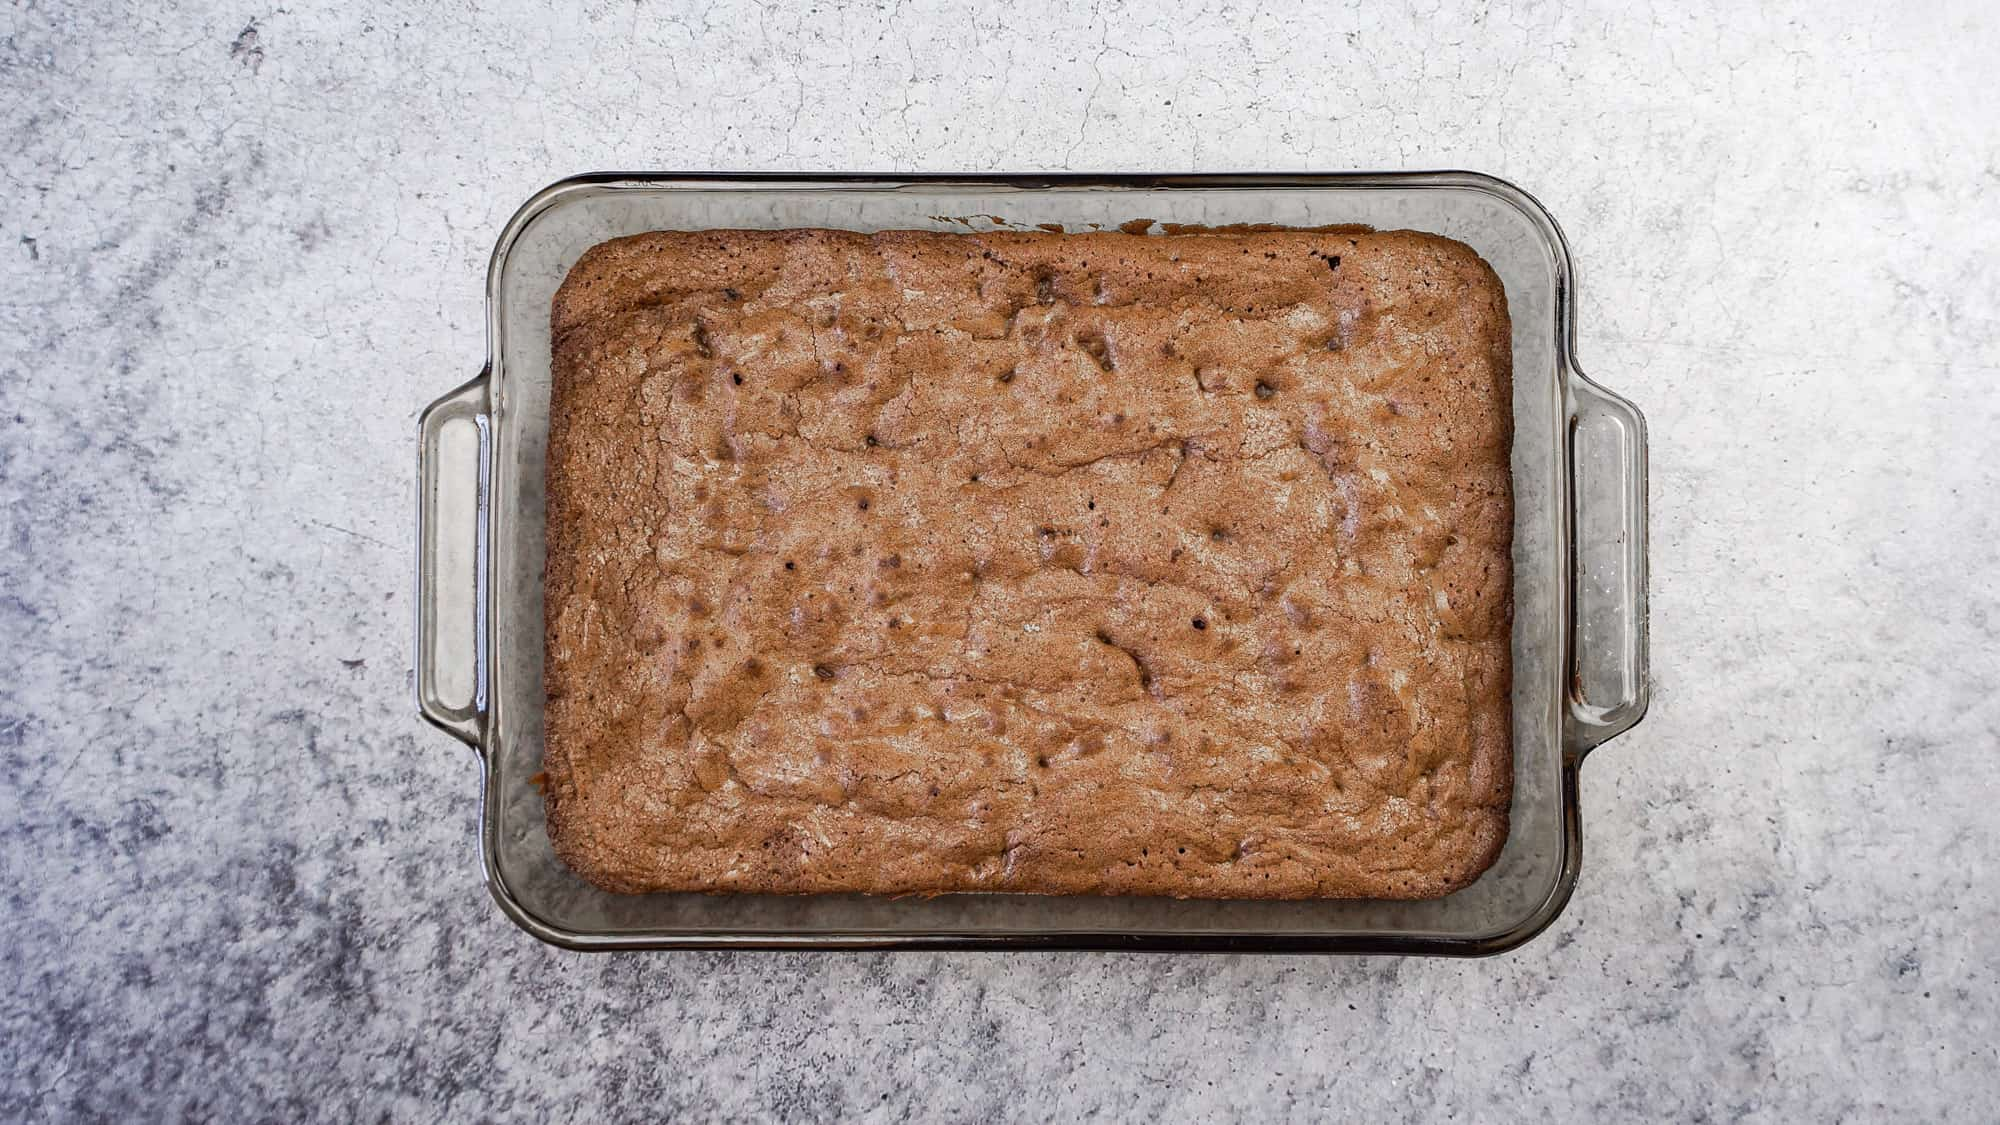 brownies baked in baking dishes